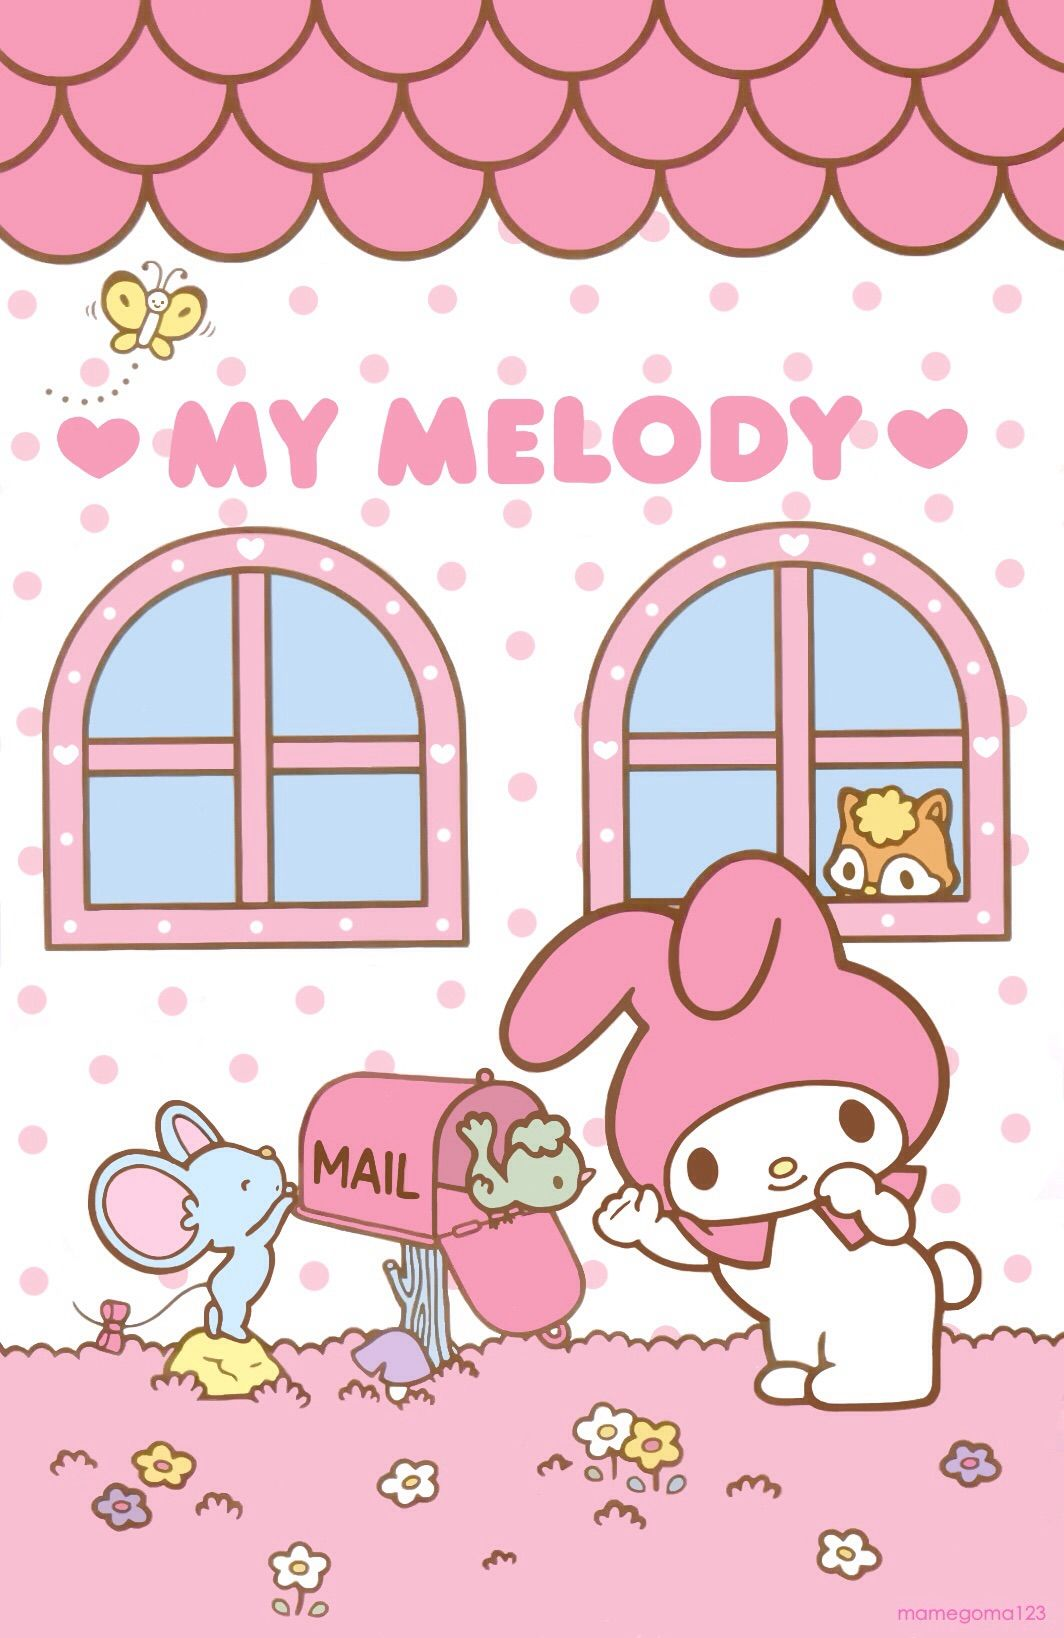 Cute images | Japanese Ilustration - My melody | Pinterest | Libros ...